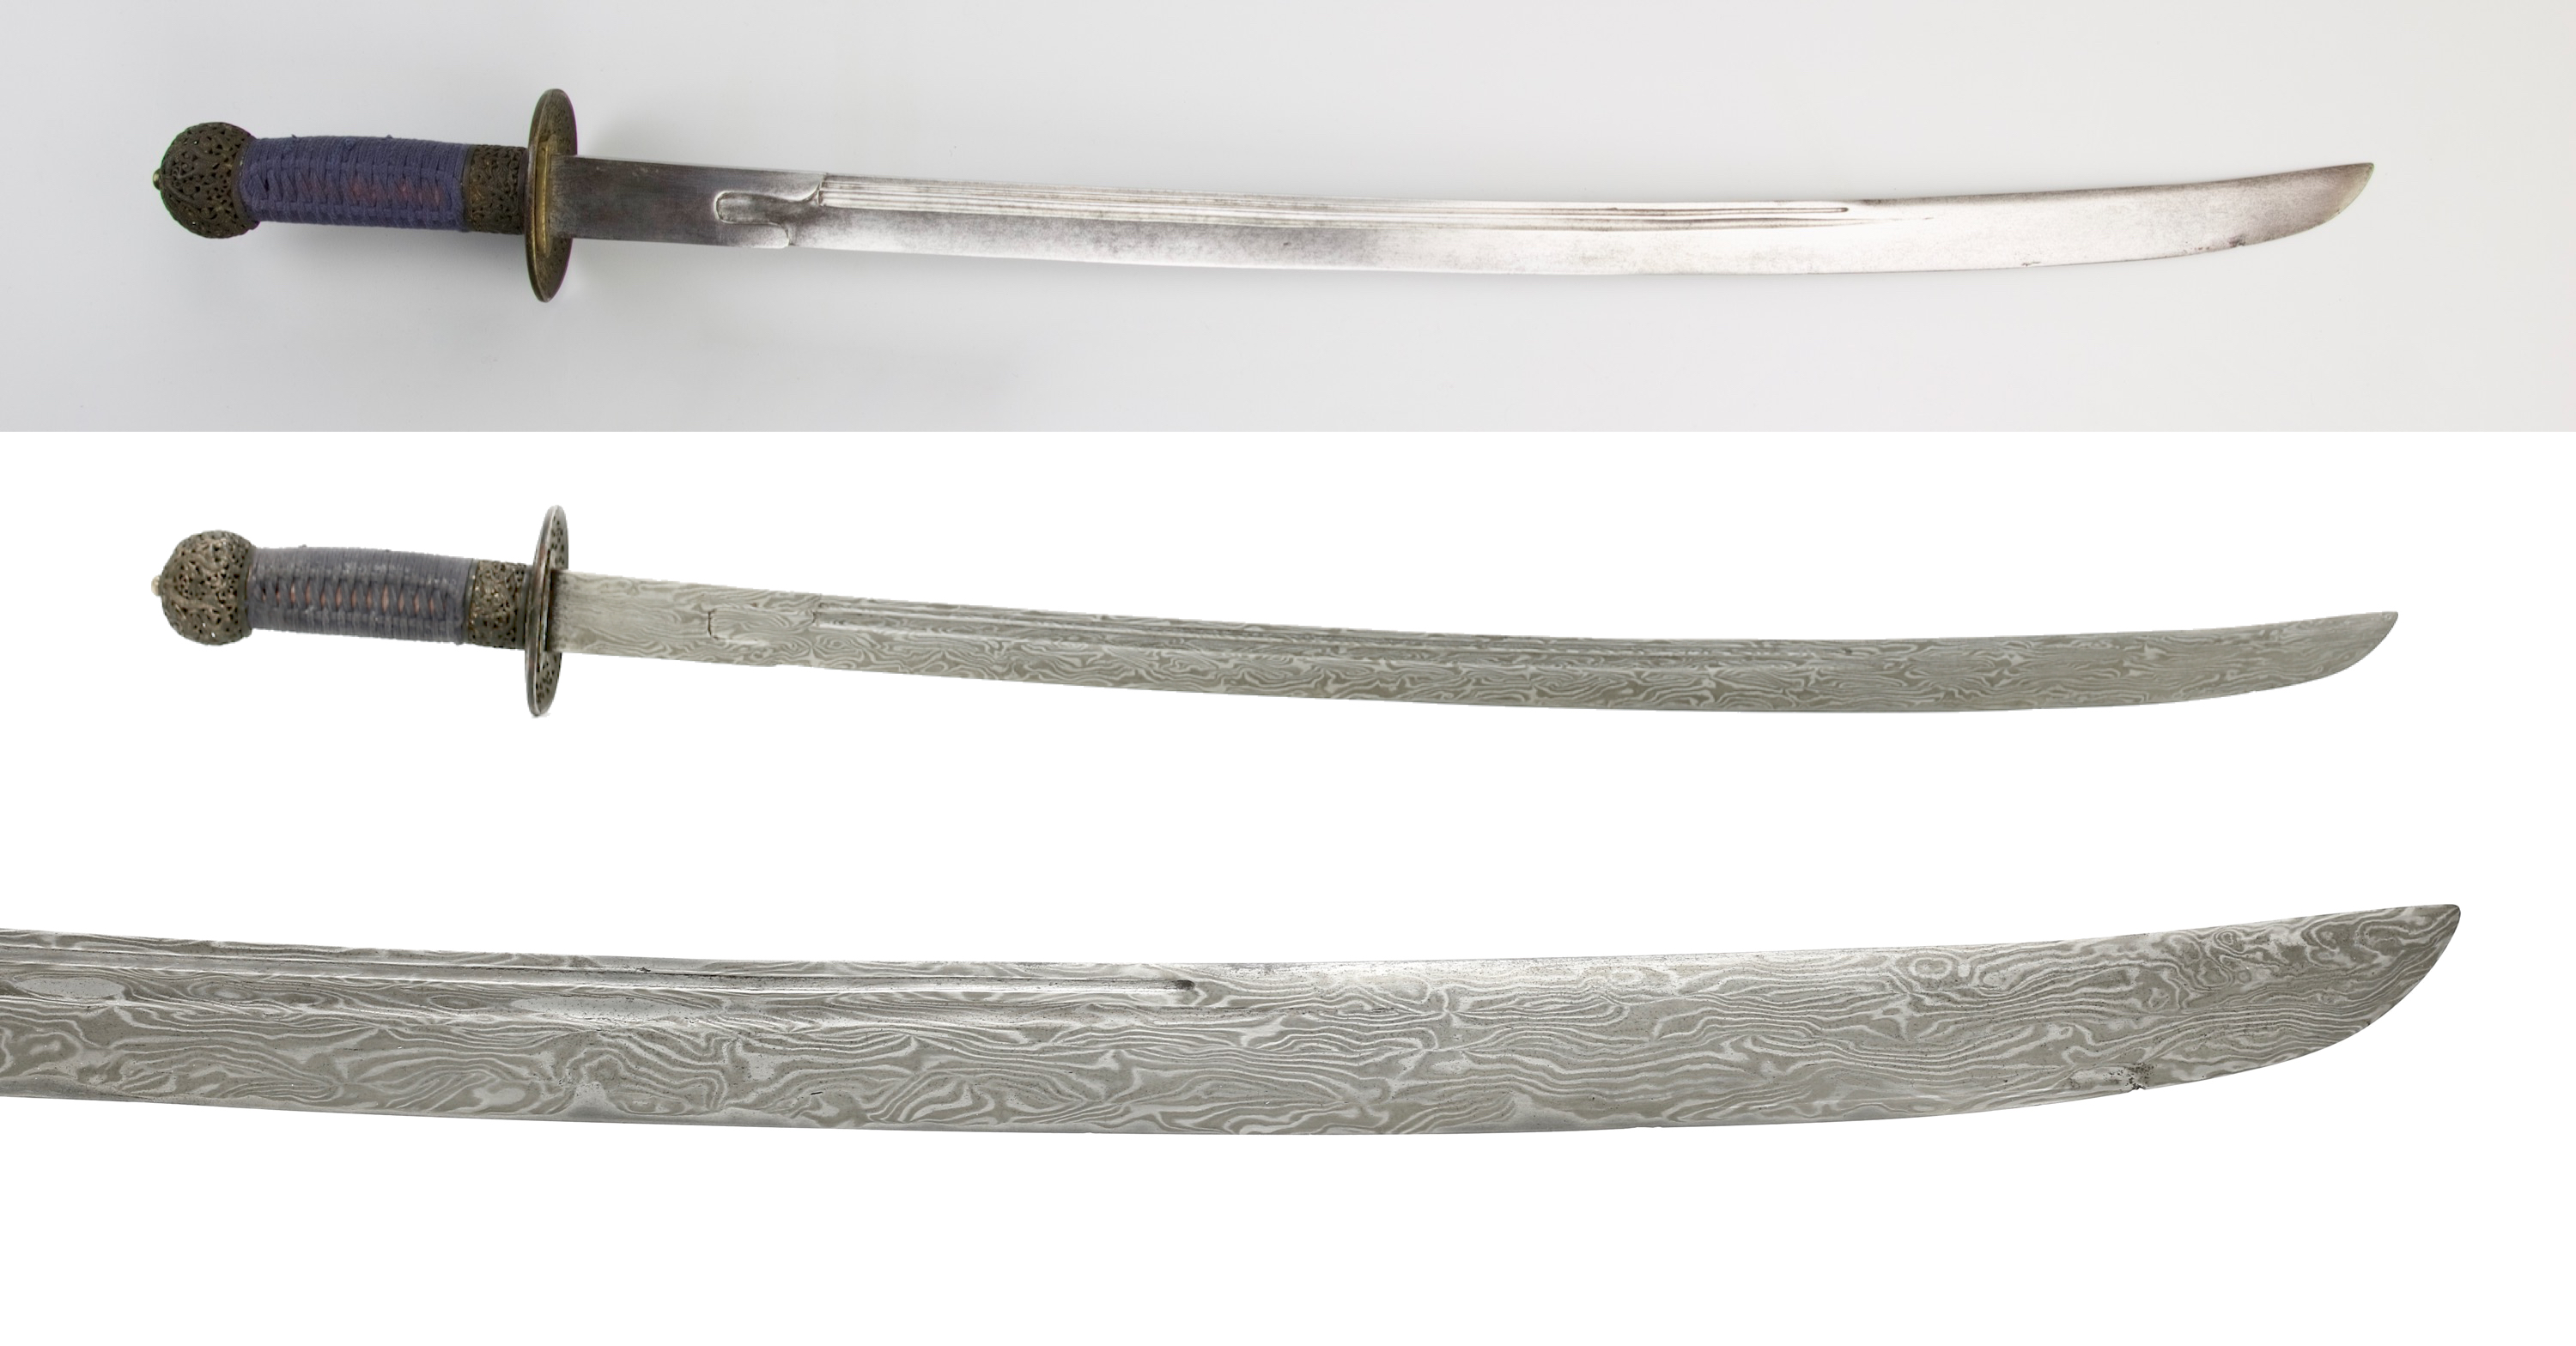 Polish on an 18th century Chinese saber